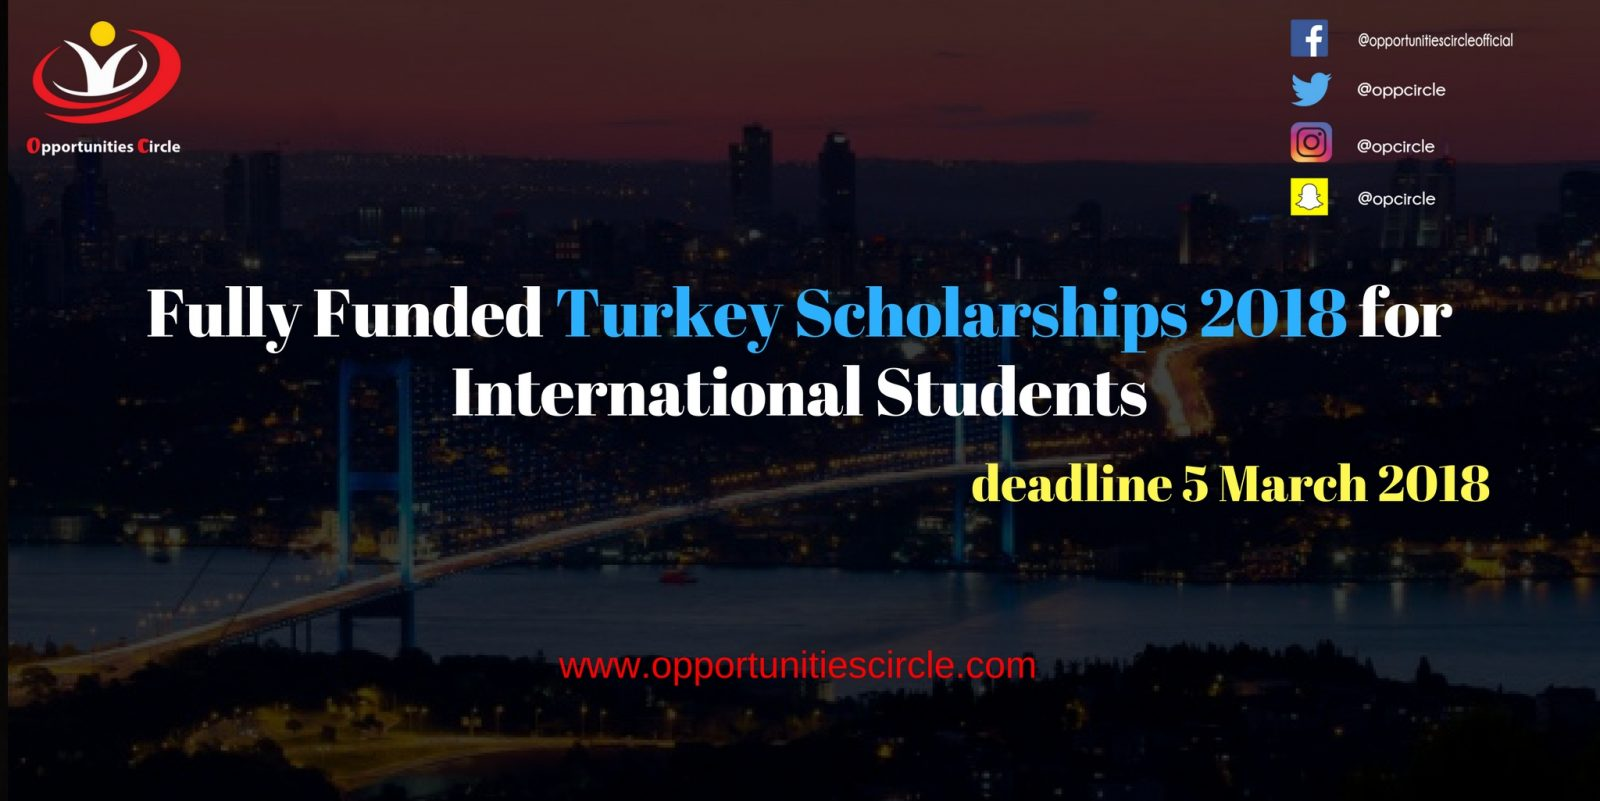 Fully Funded Turkey Scholarships 2018 for International Students - Fully Funded Turkey Scholarships 2018 for International Students